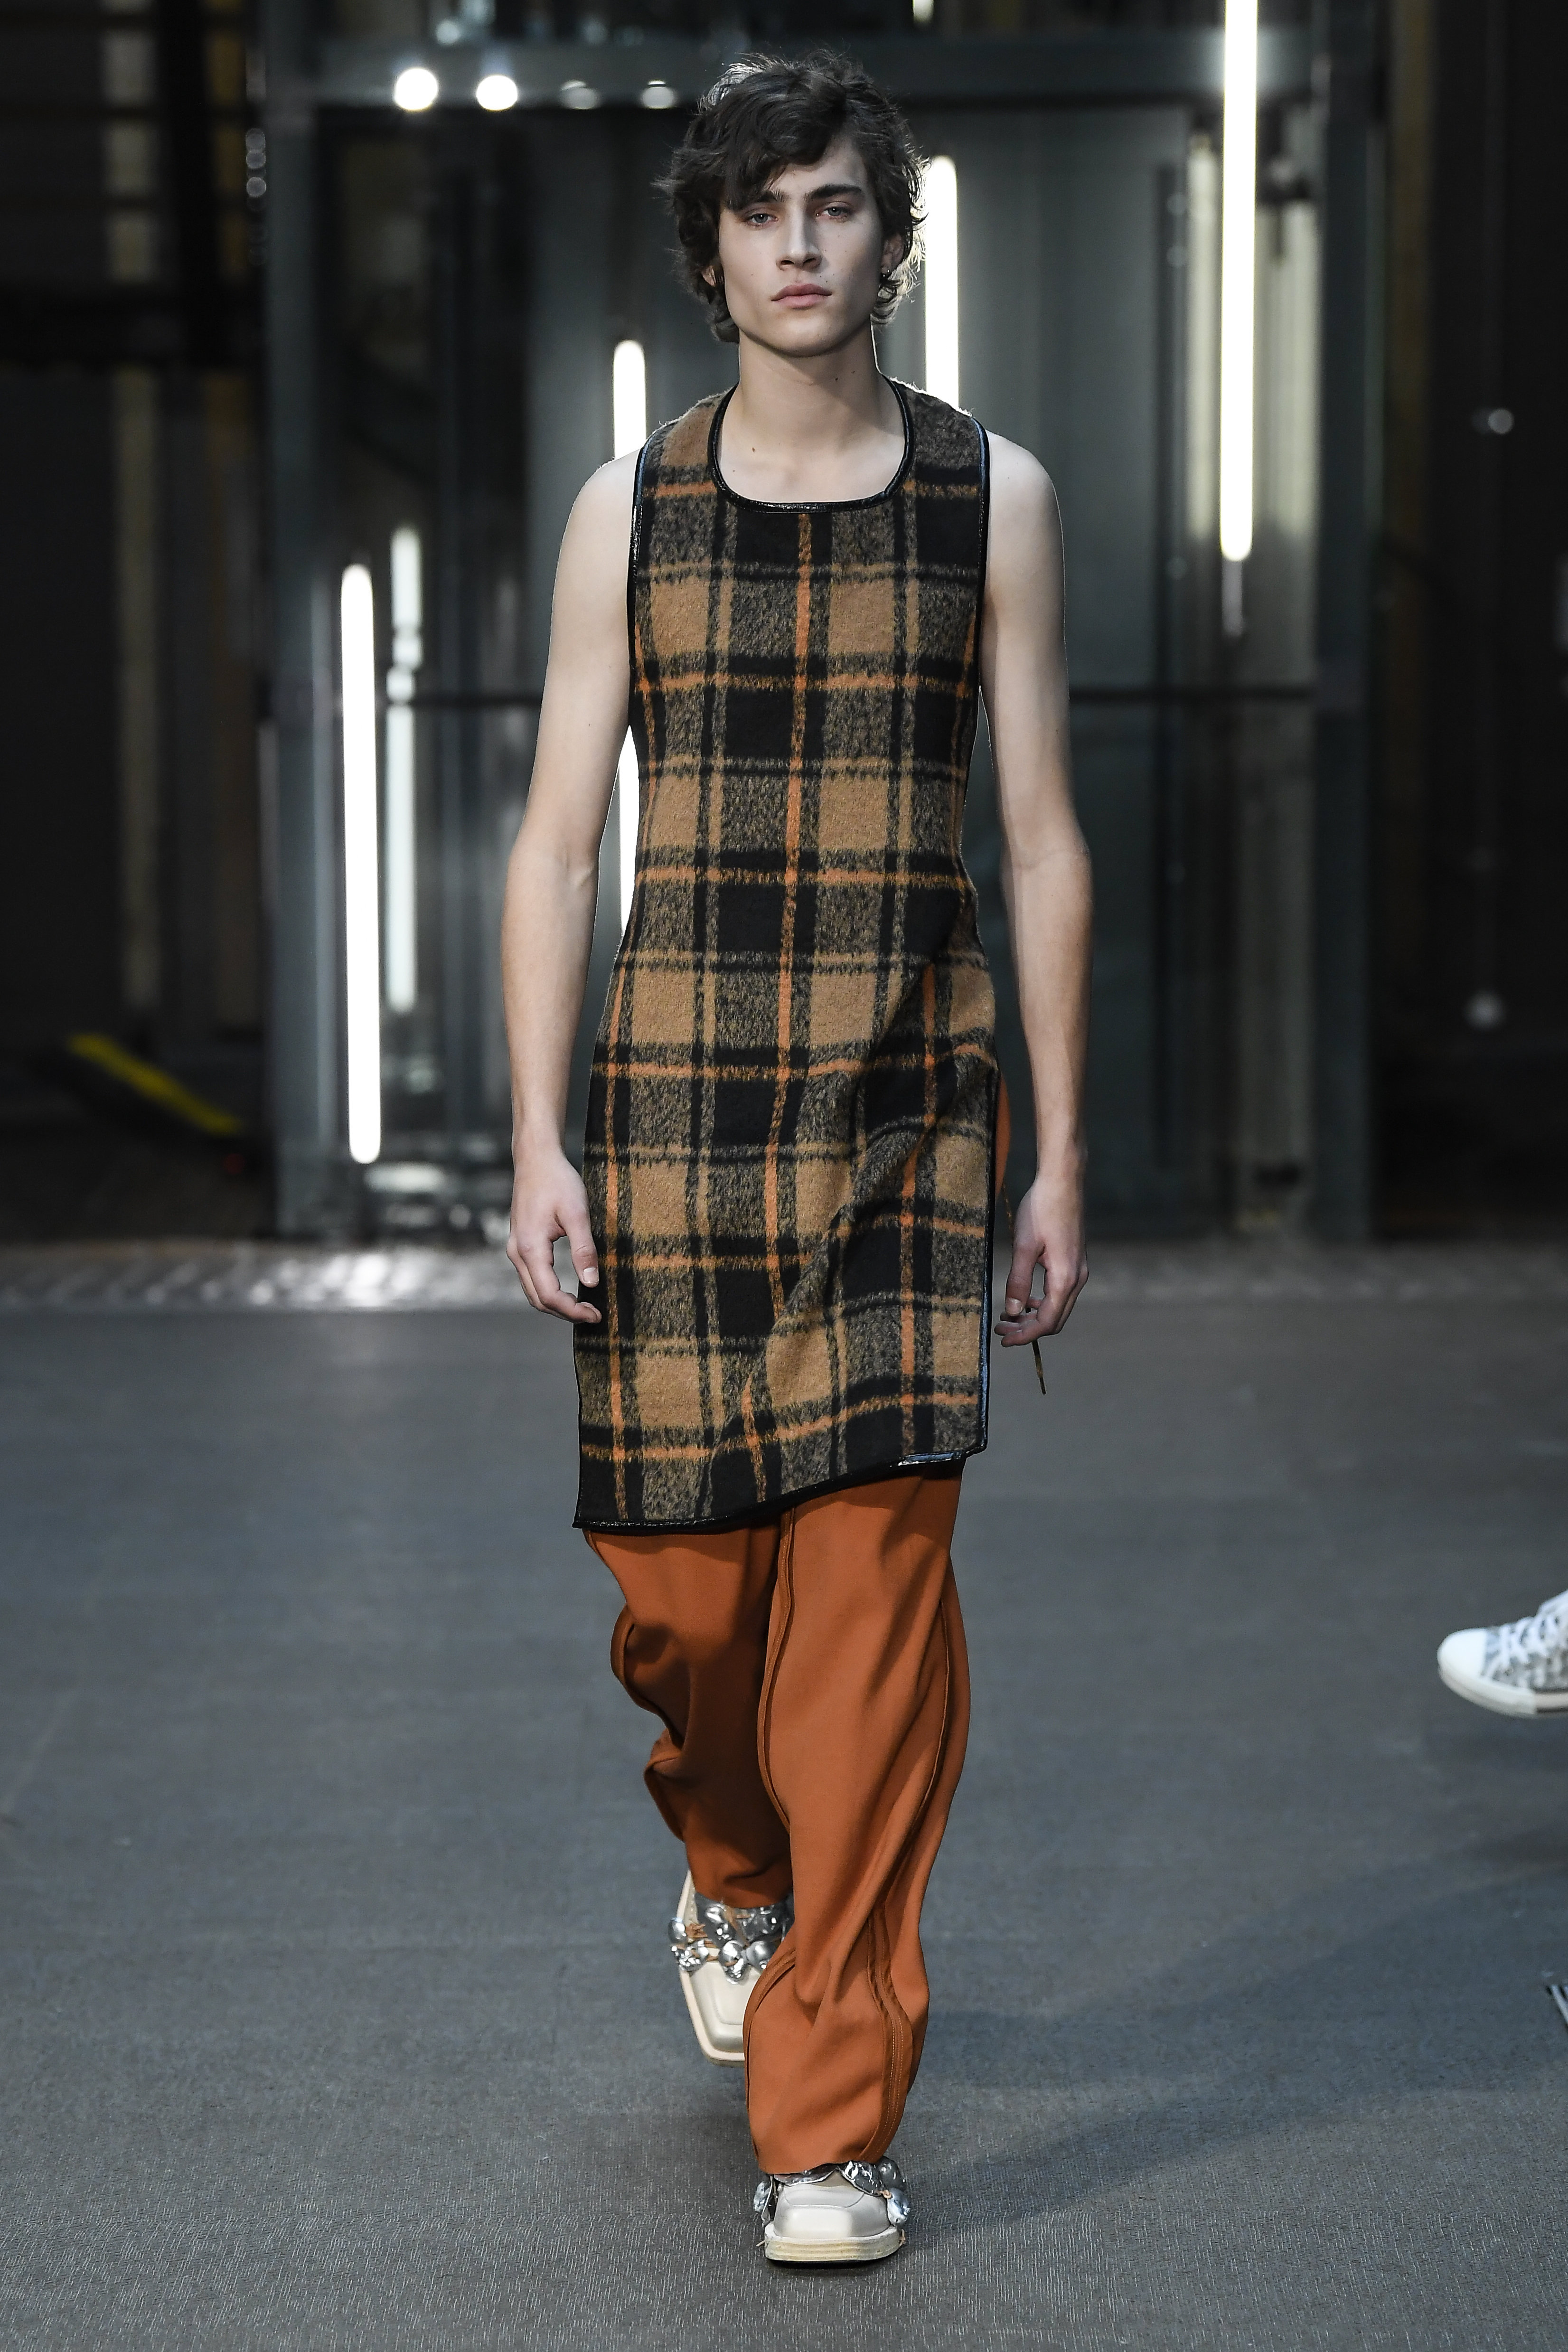 Pronounce Men & Women Fall Winter 2019 London fashionpress.it